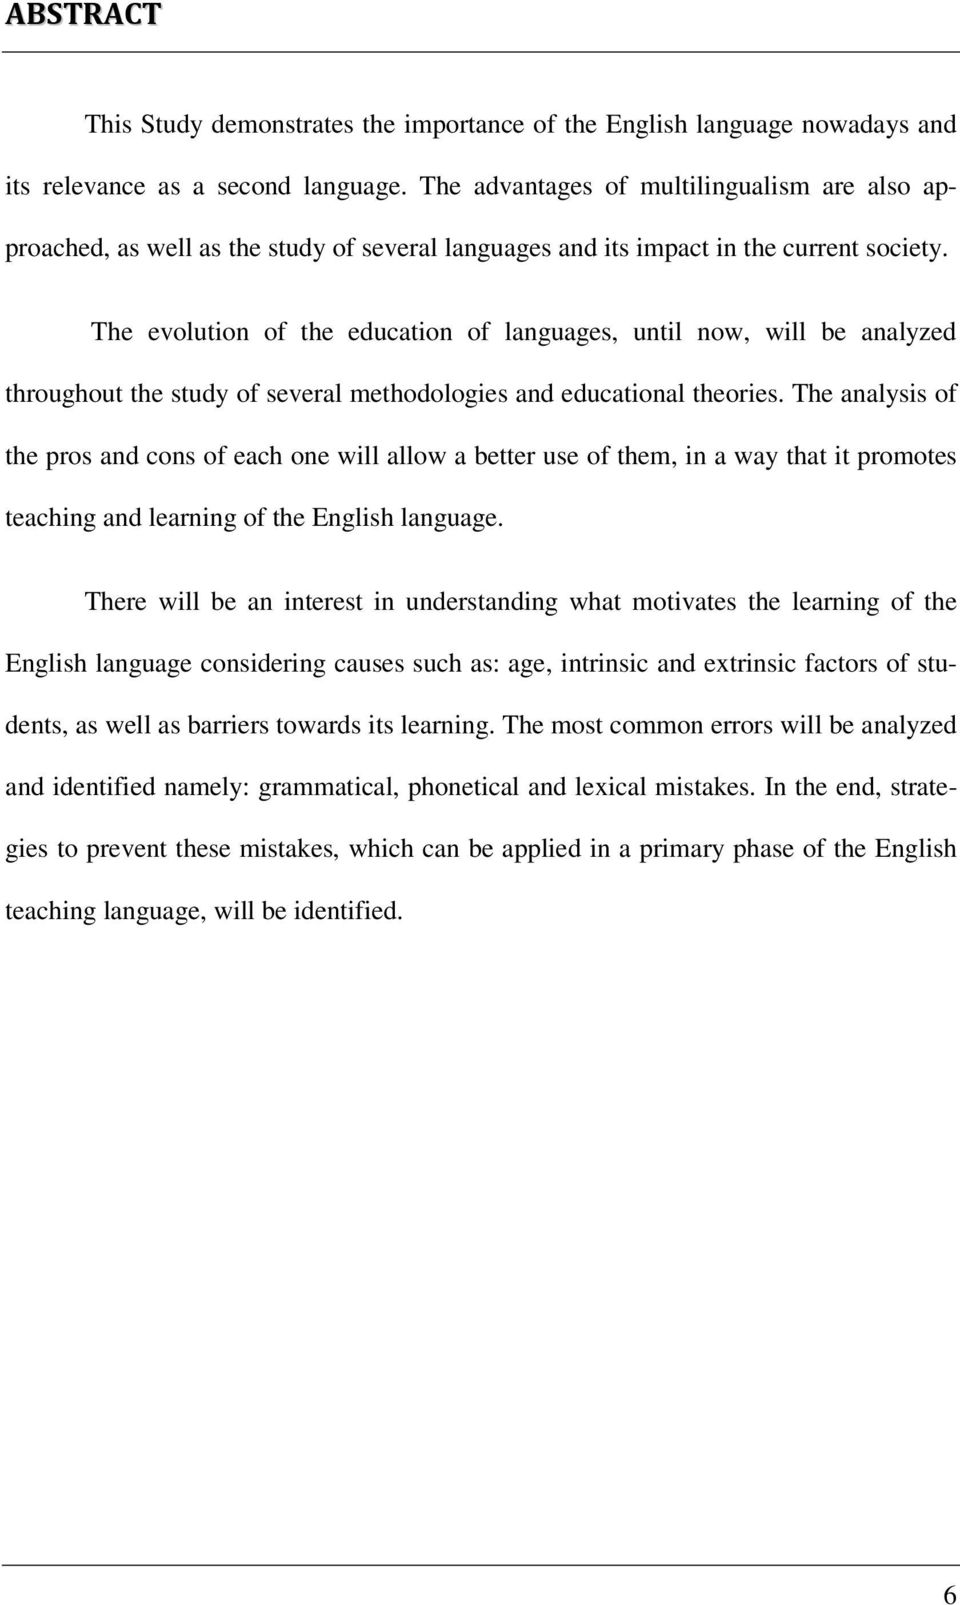 The evolution of the education of languages, until now, will be analyzed throughout the study of several methodologies and educational theories.